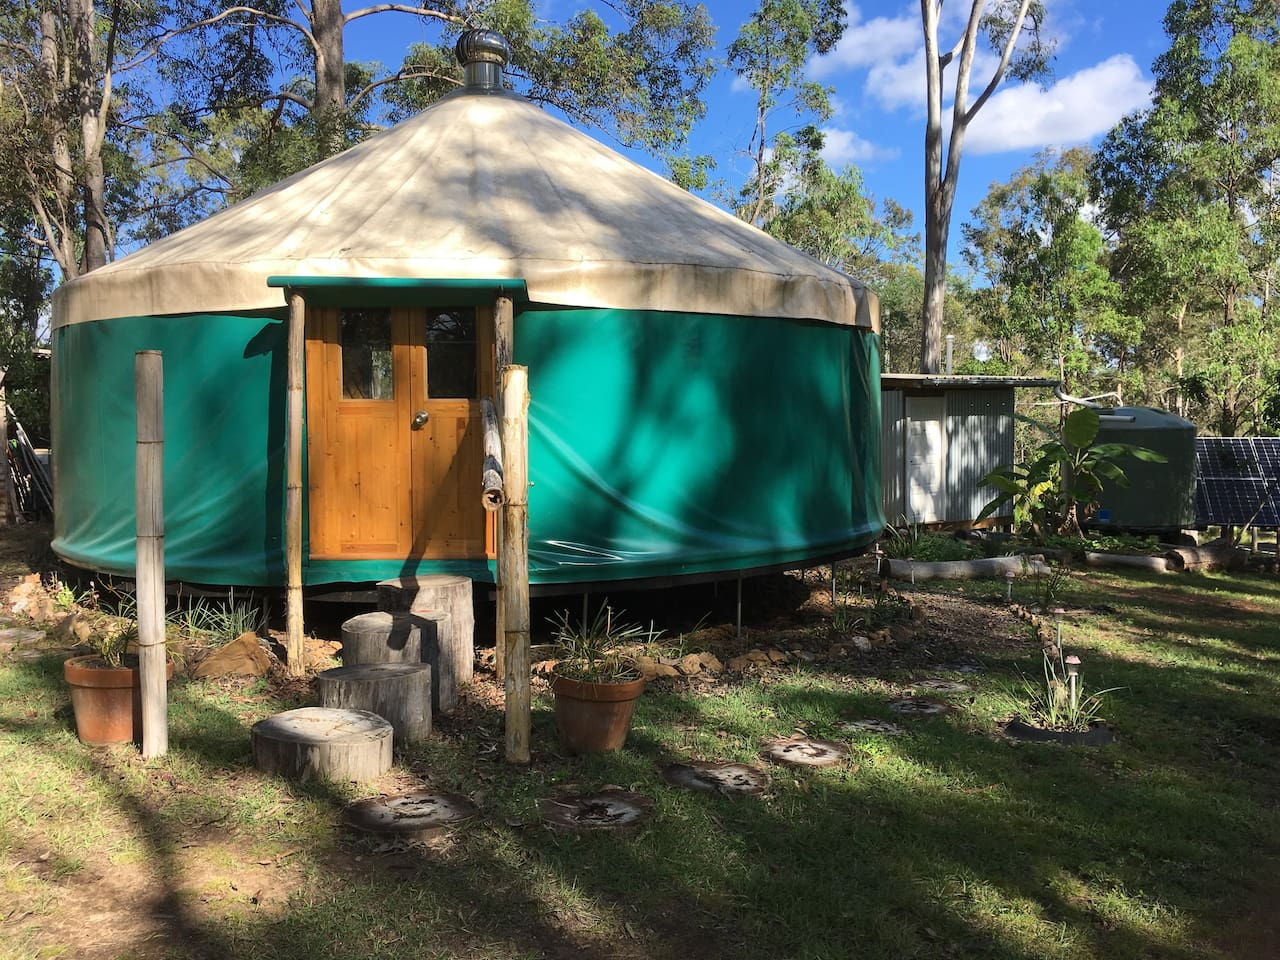 Mothar Yurt - Mothar Mountain Queensland